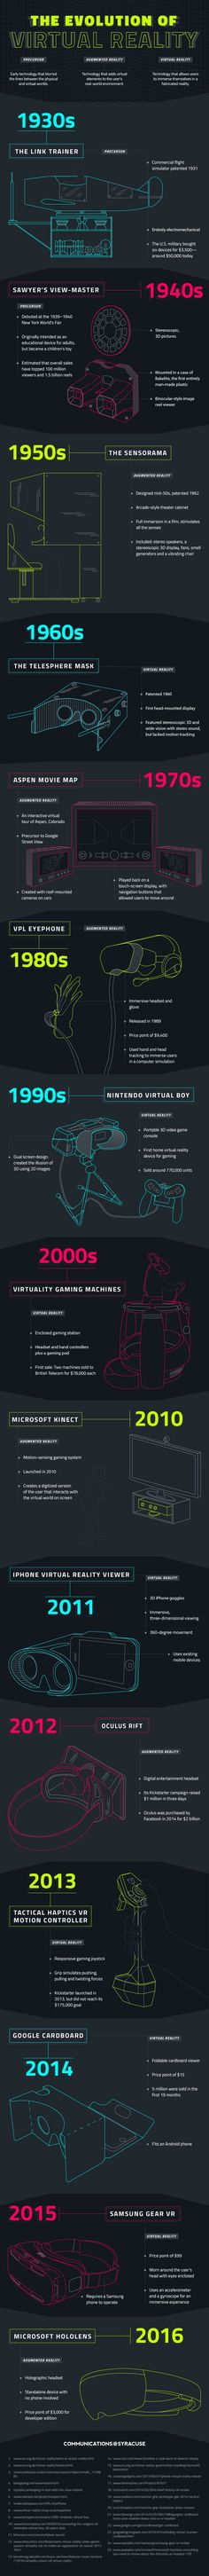 VRJournal Highlights The Evolution of Virtual Reality #MobileTech #Mobile #tech